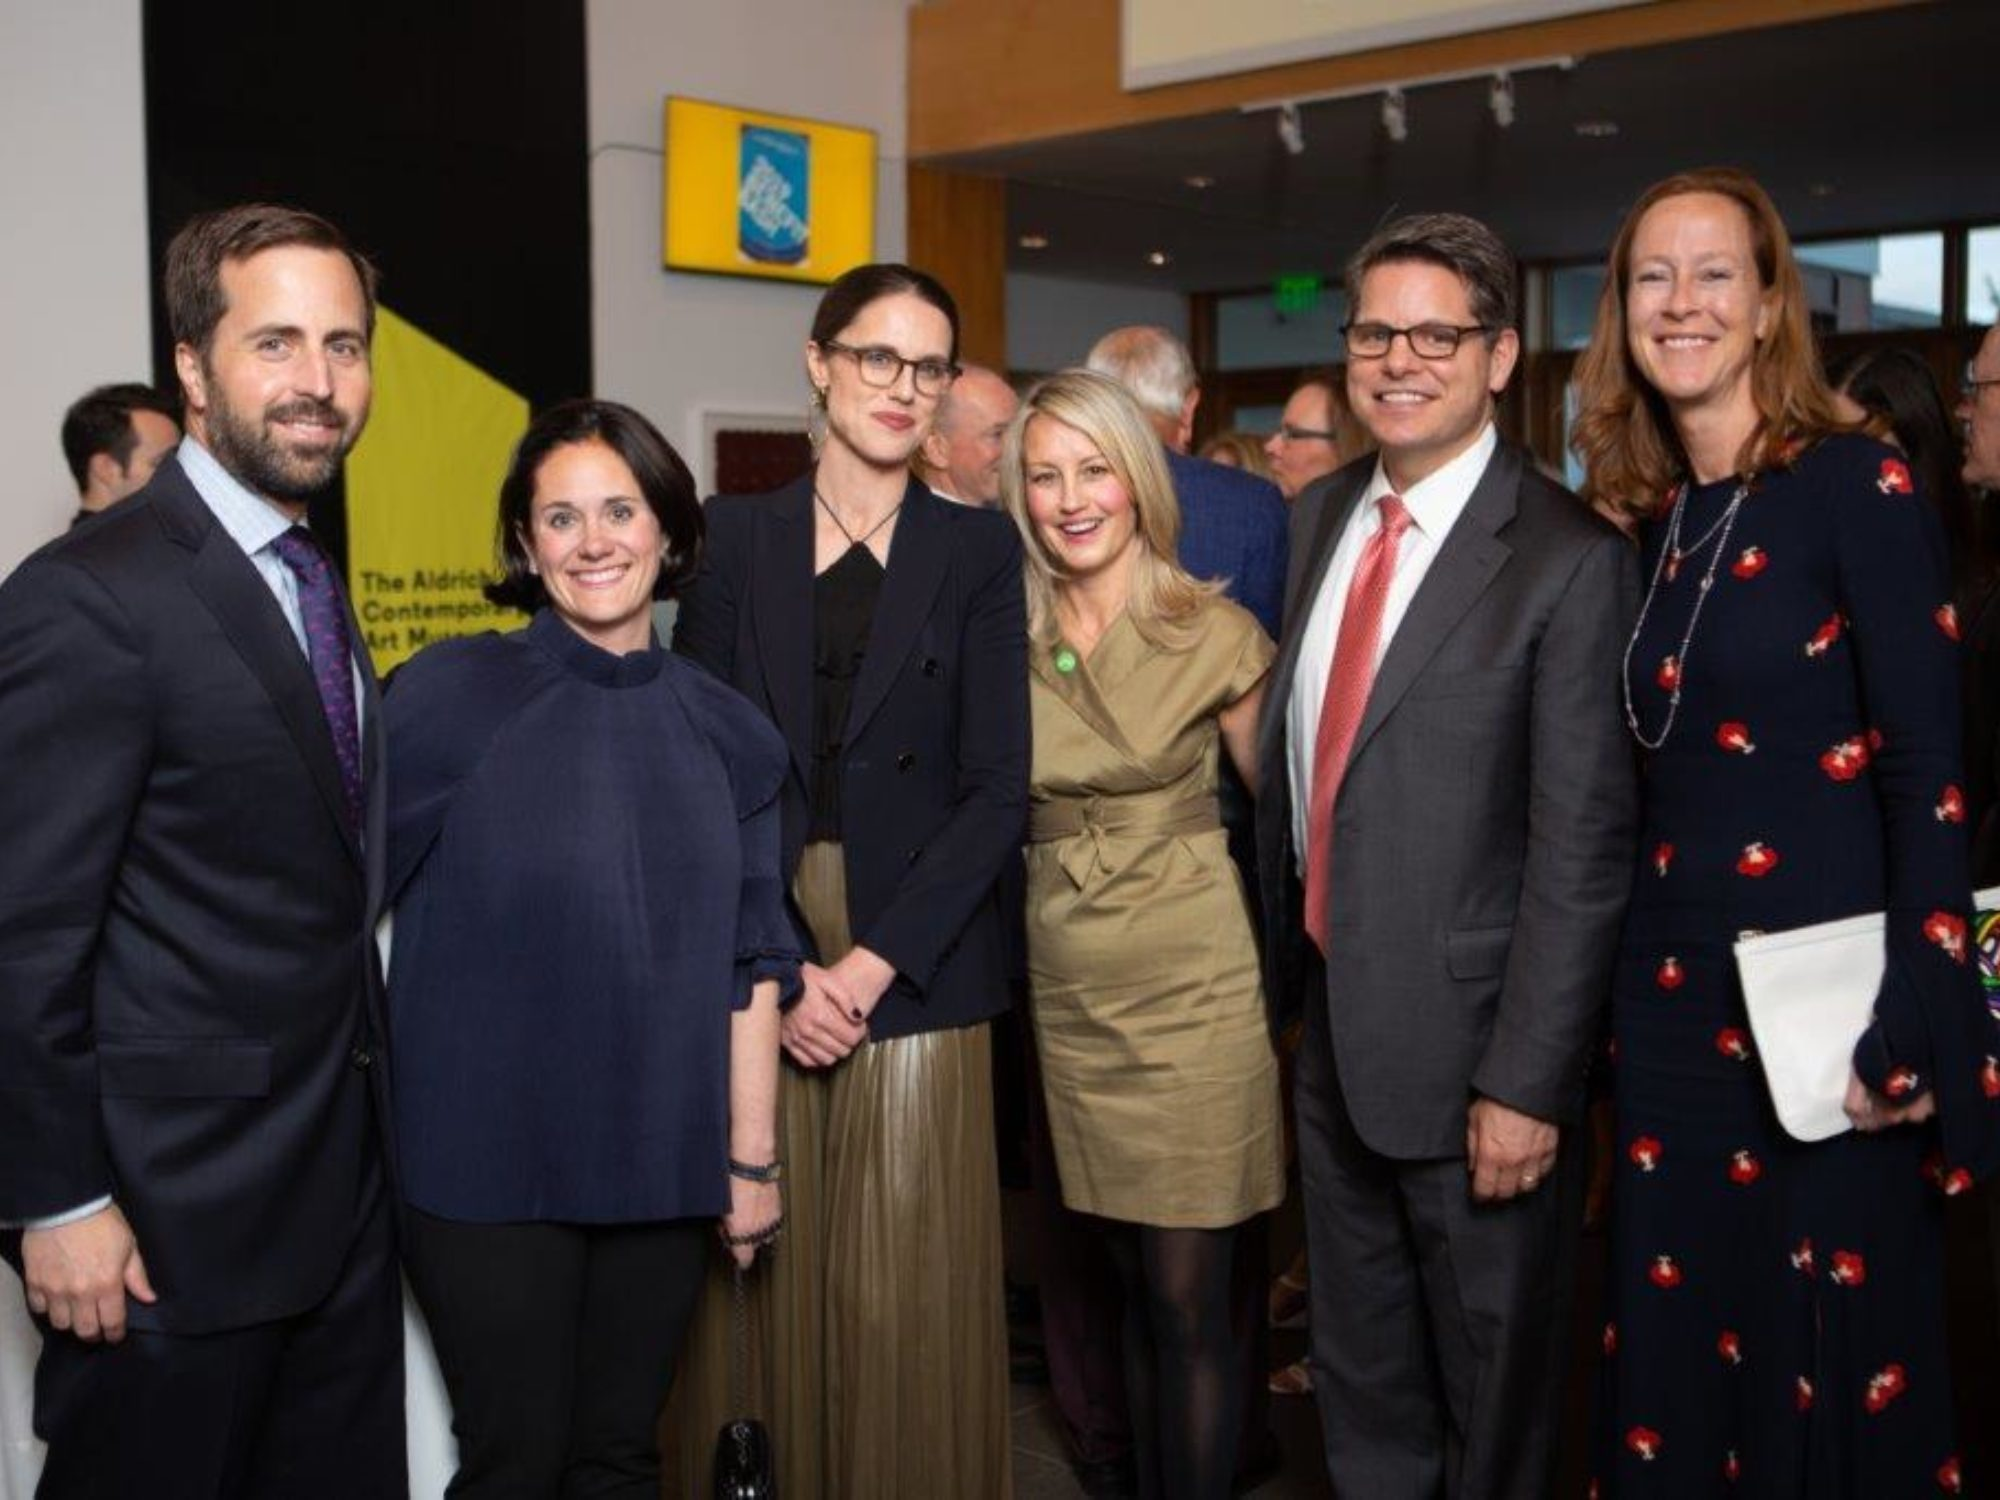 Gala attendees pose at The Aldrich